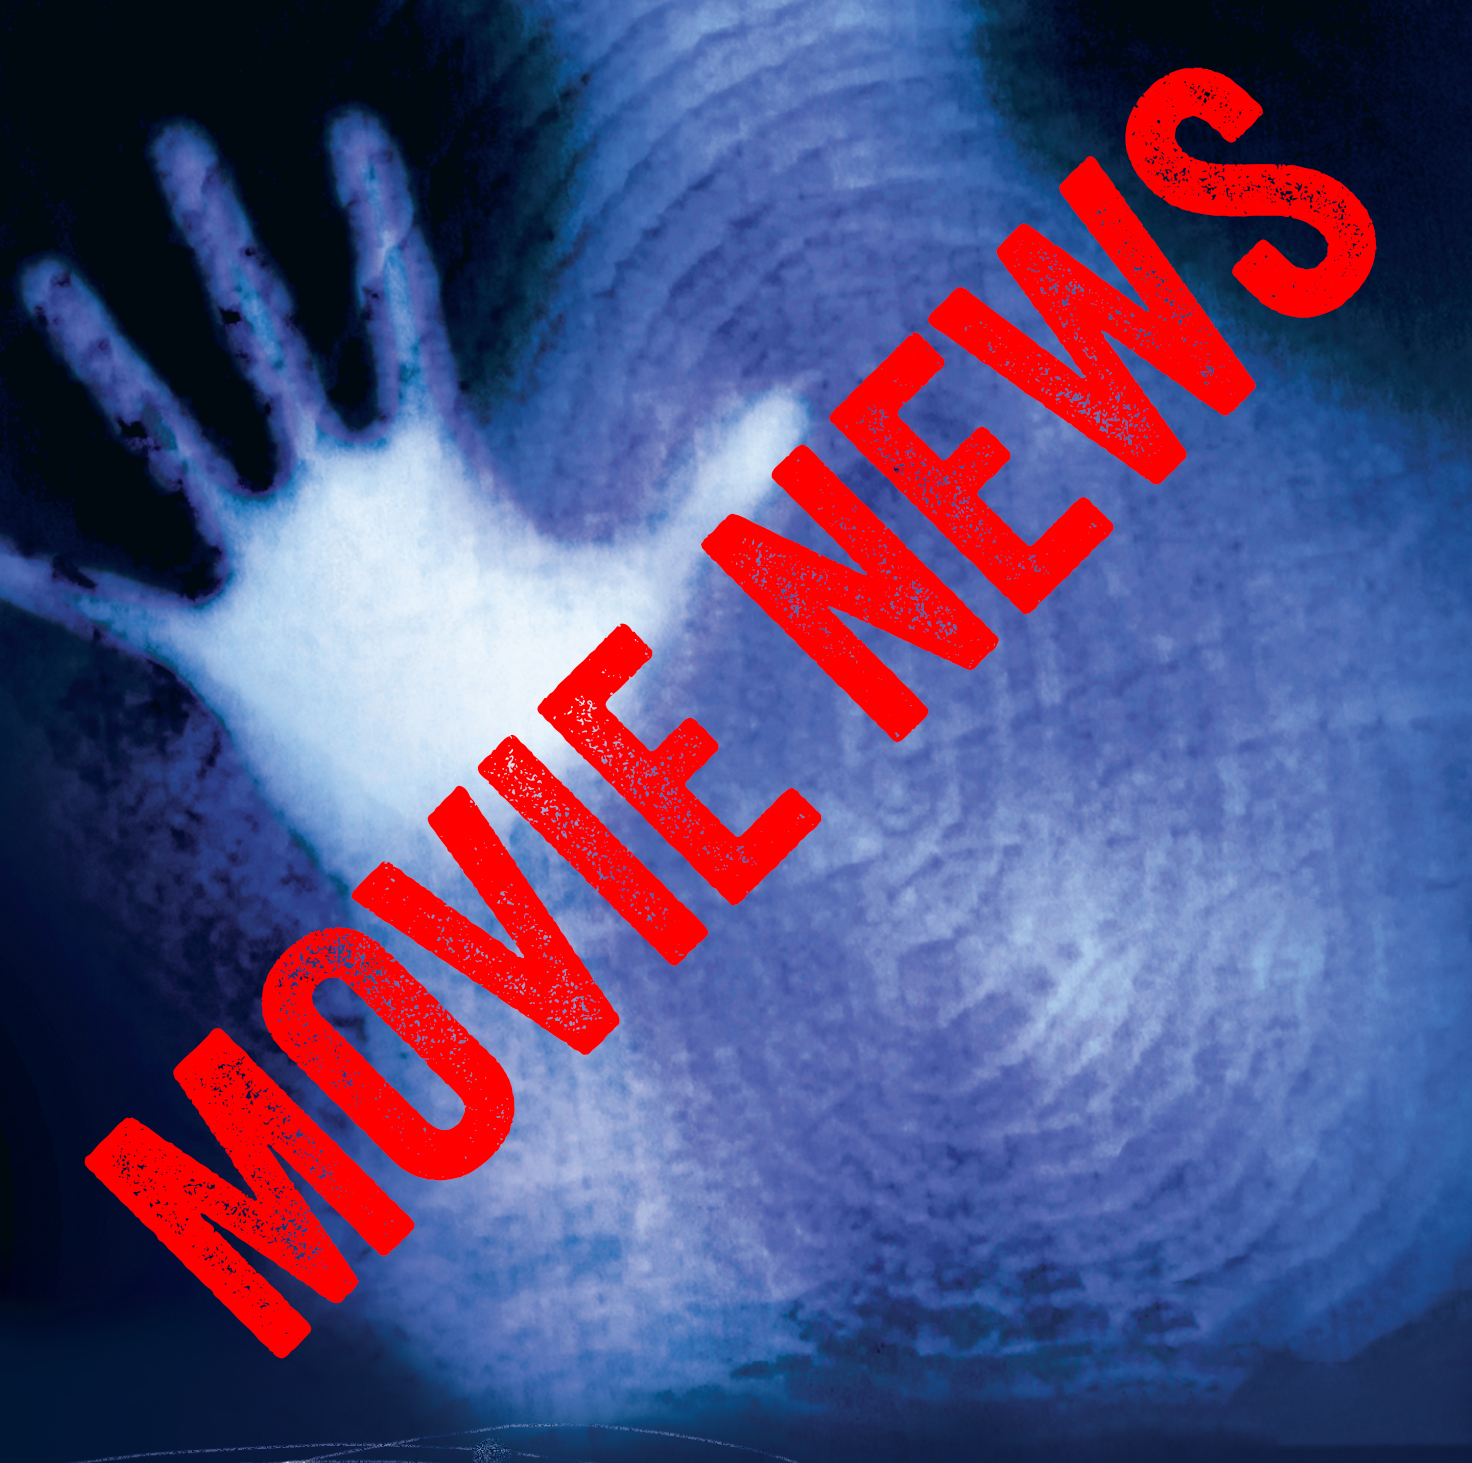 Unwind-Movie-News